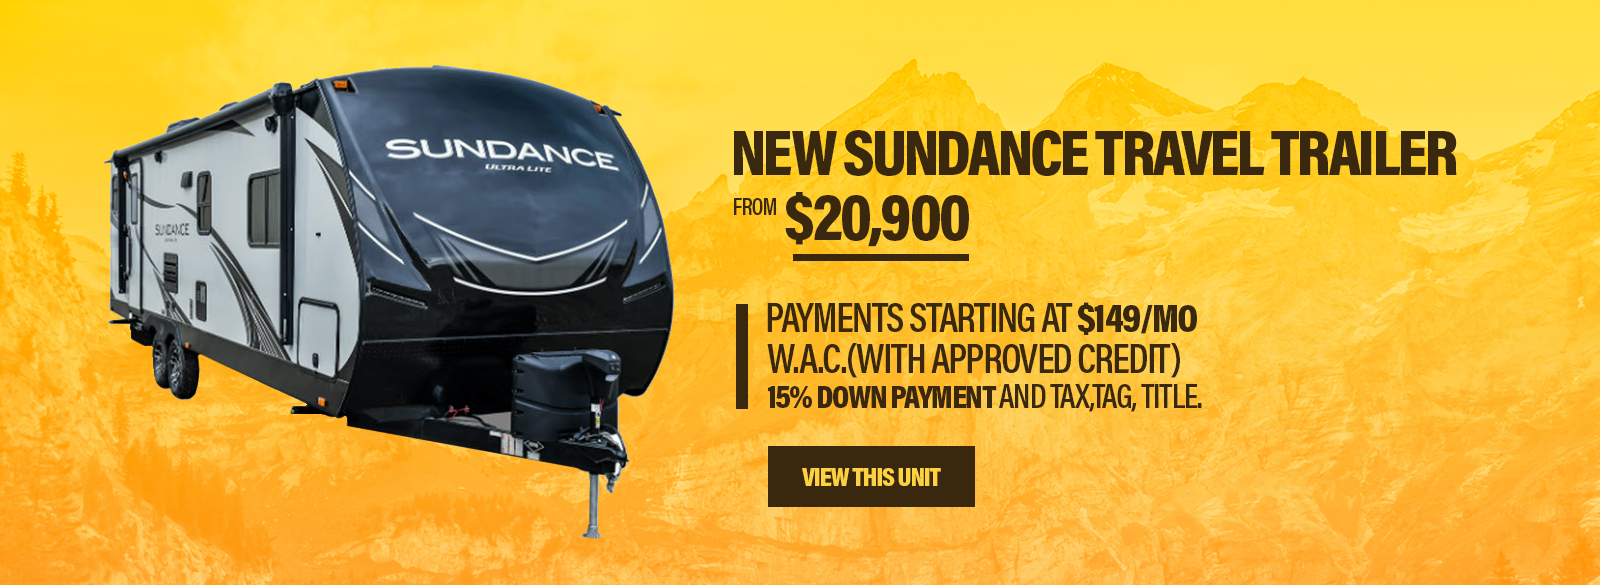 TriAmRV_Sundance_HomepageBanner_April19.png